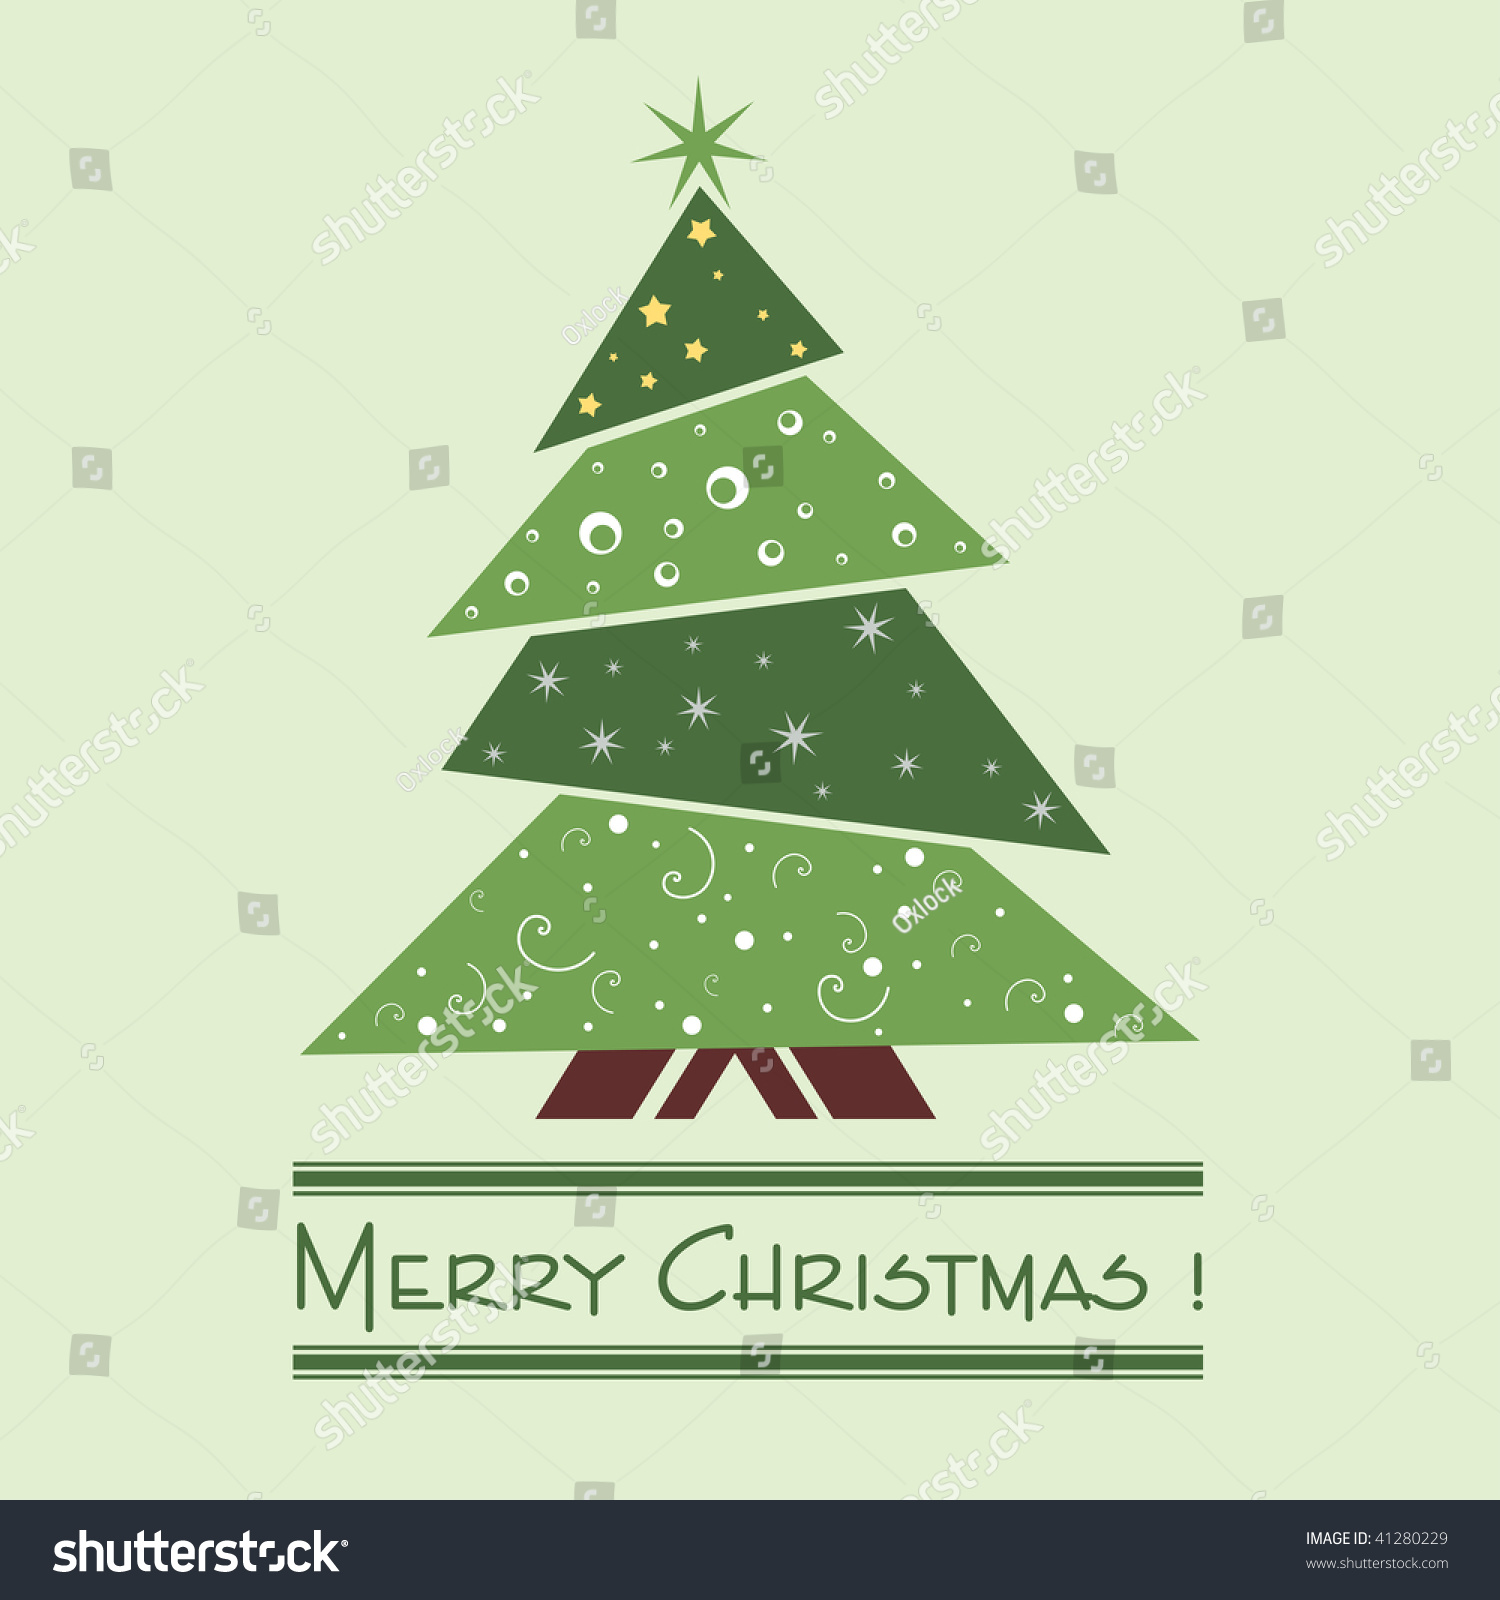 Vector Illustration Tree: Colorful Illustration With Decorated Green Christmas Tree